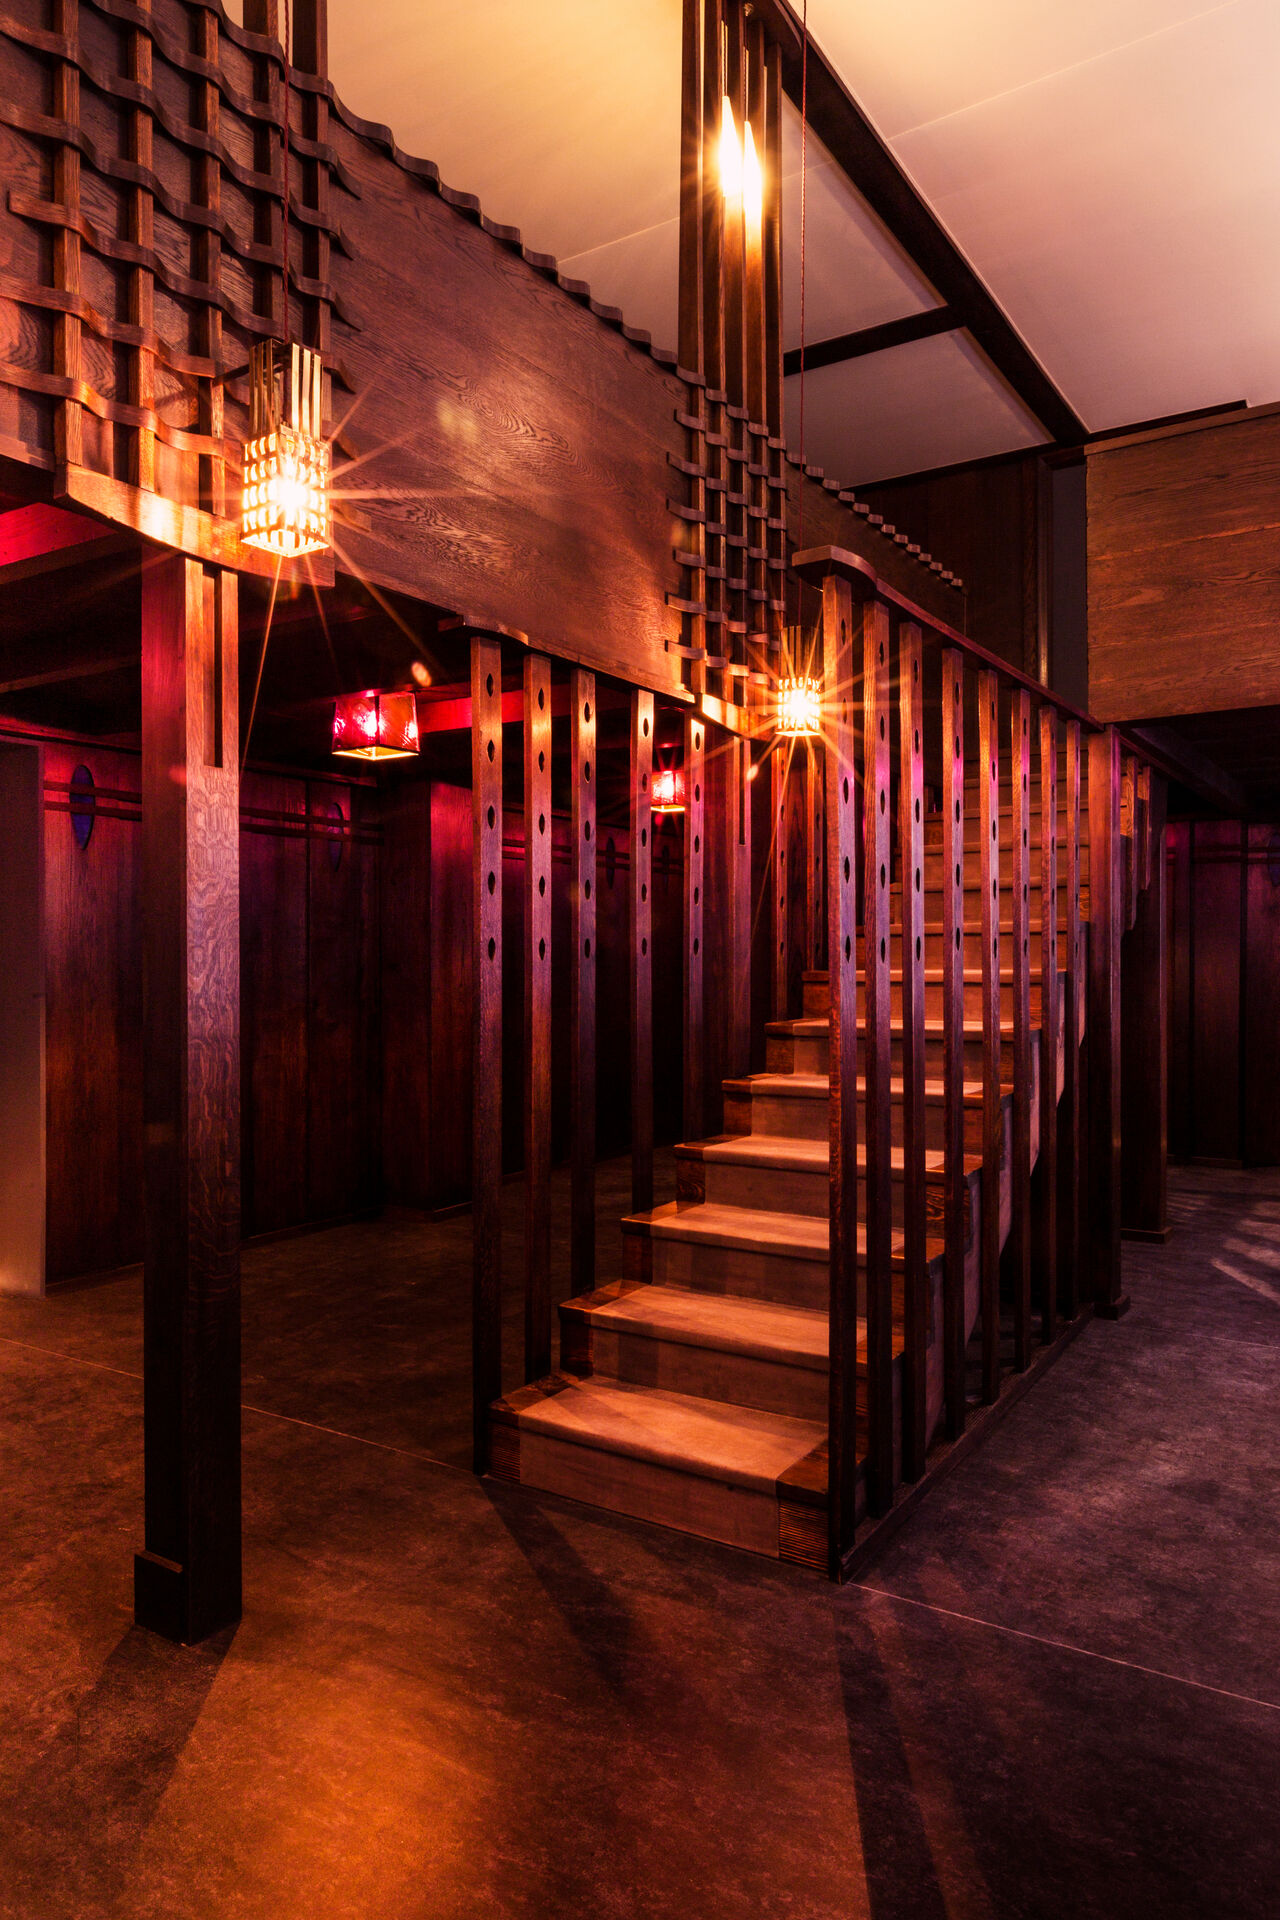 Mackintosh's Oak Room, all dark wood and purple glass. A staircase rises to the upper level.